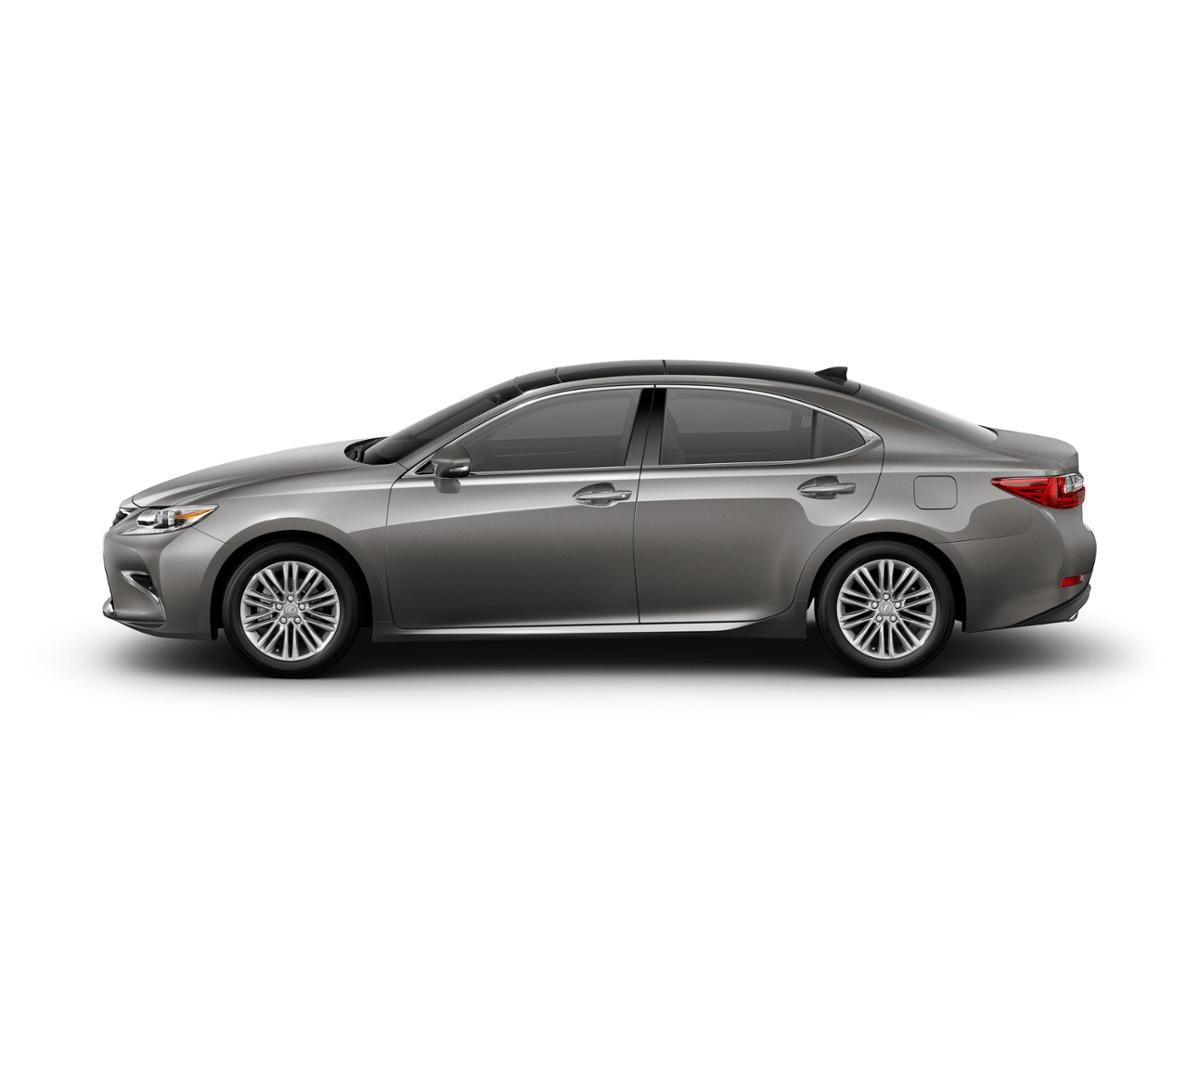 2017 Lexus ES 350 Vehicle Photo in El Monte, CA 91731